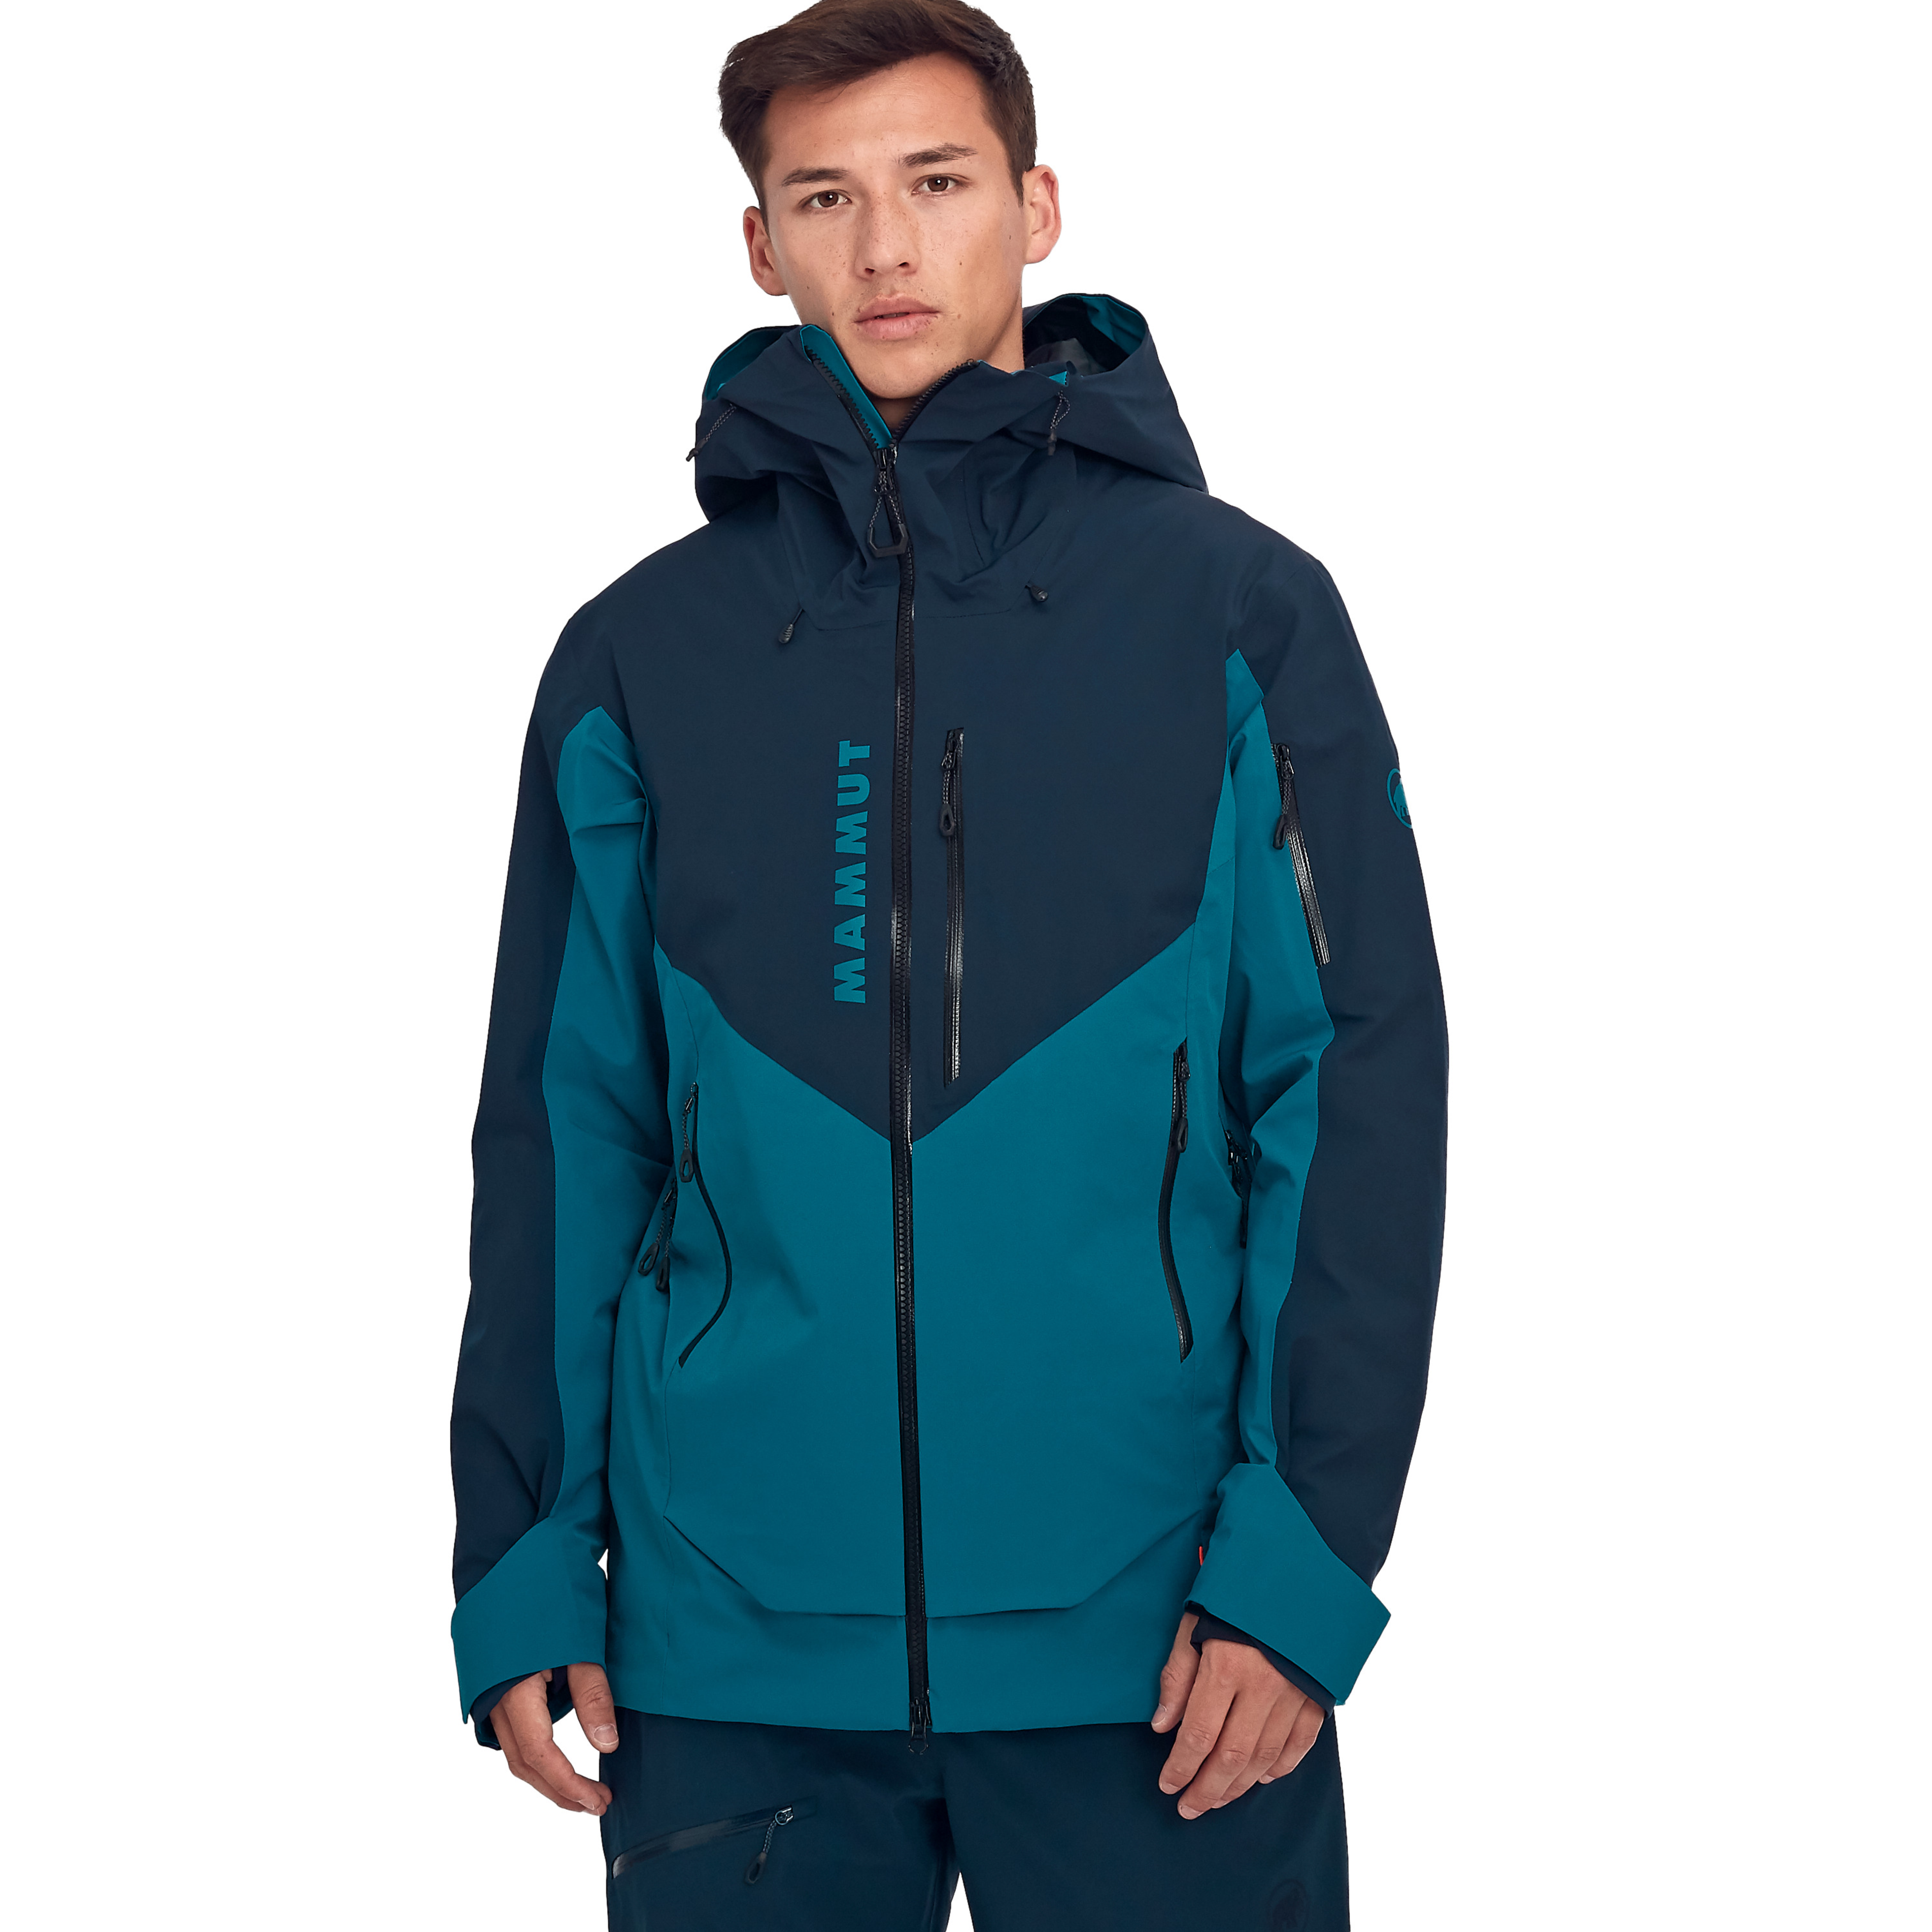 La Liste HS Thermo Hooded Jacket Men product image